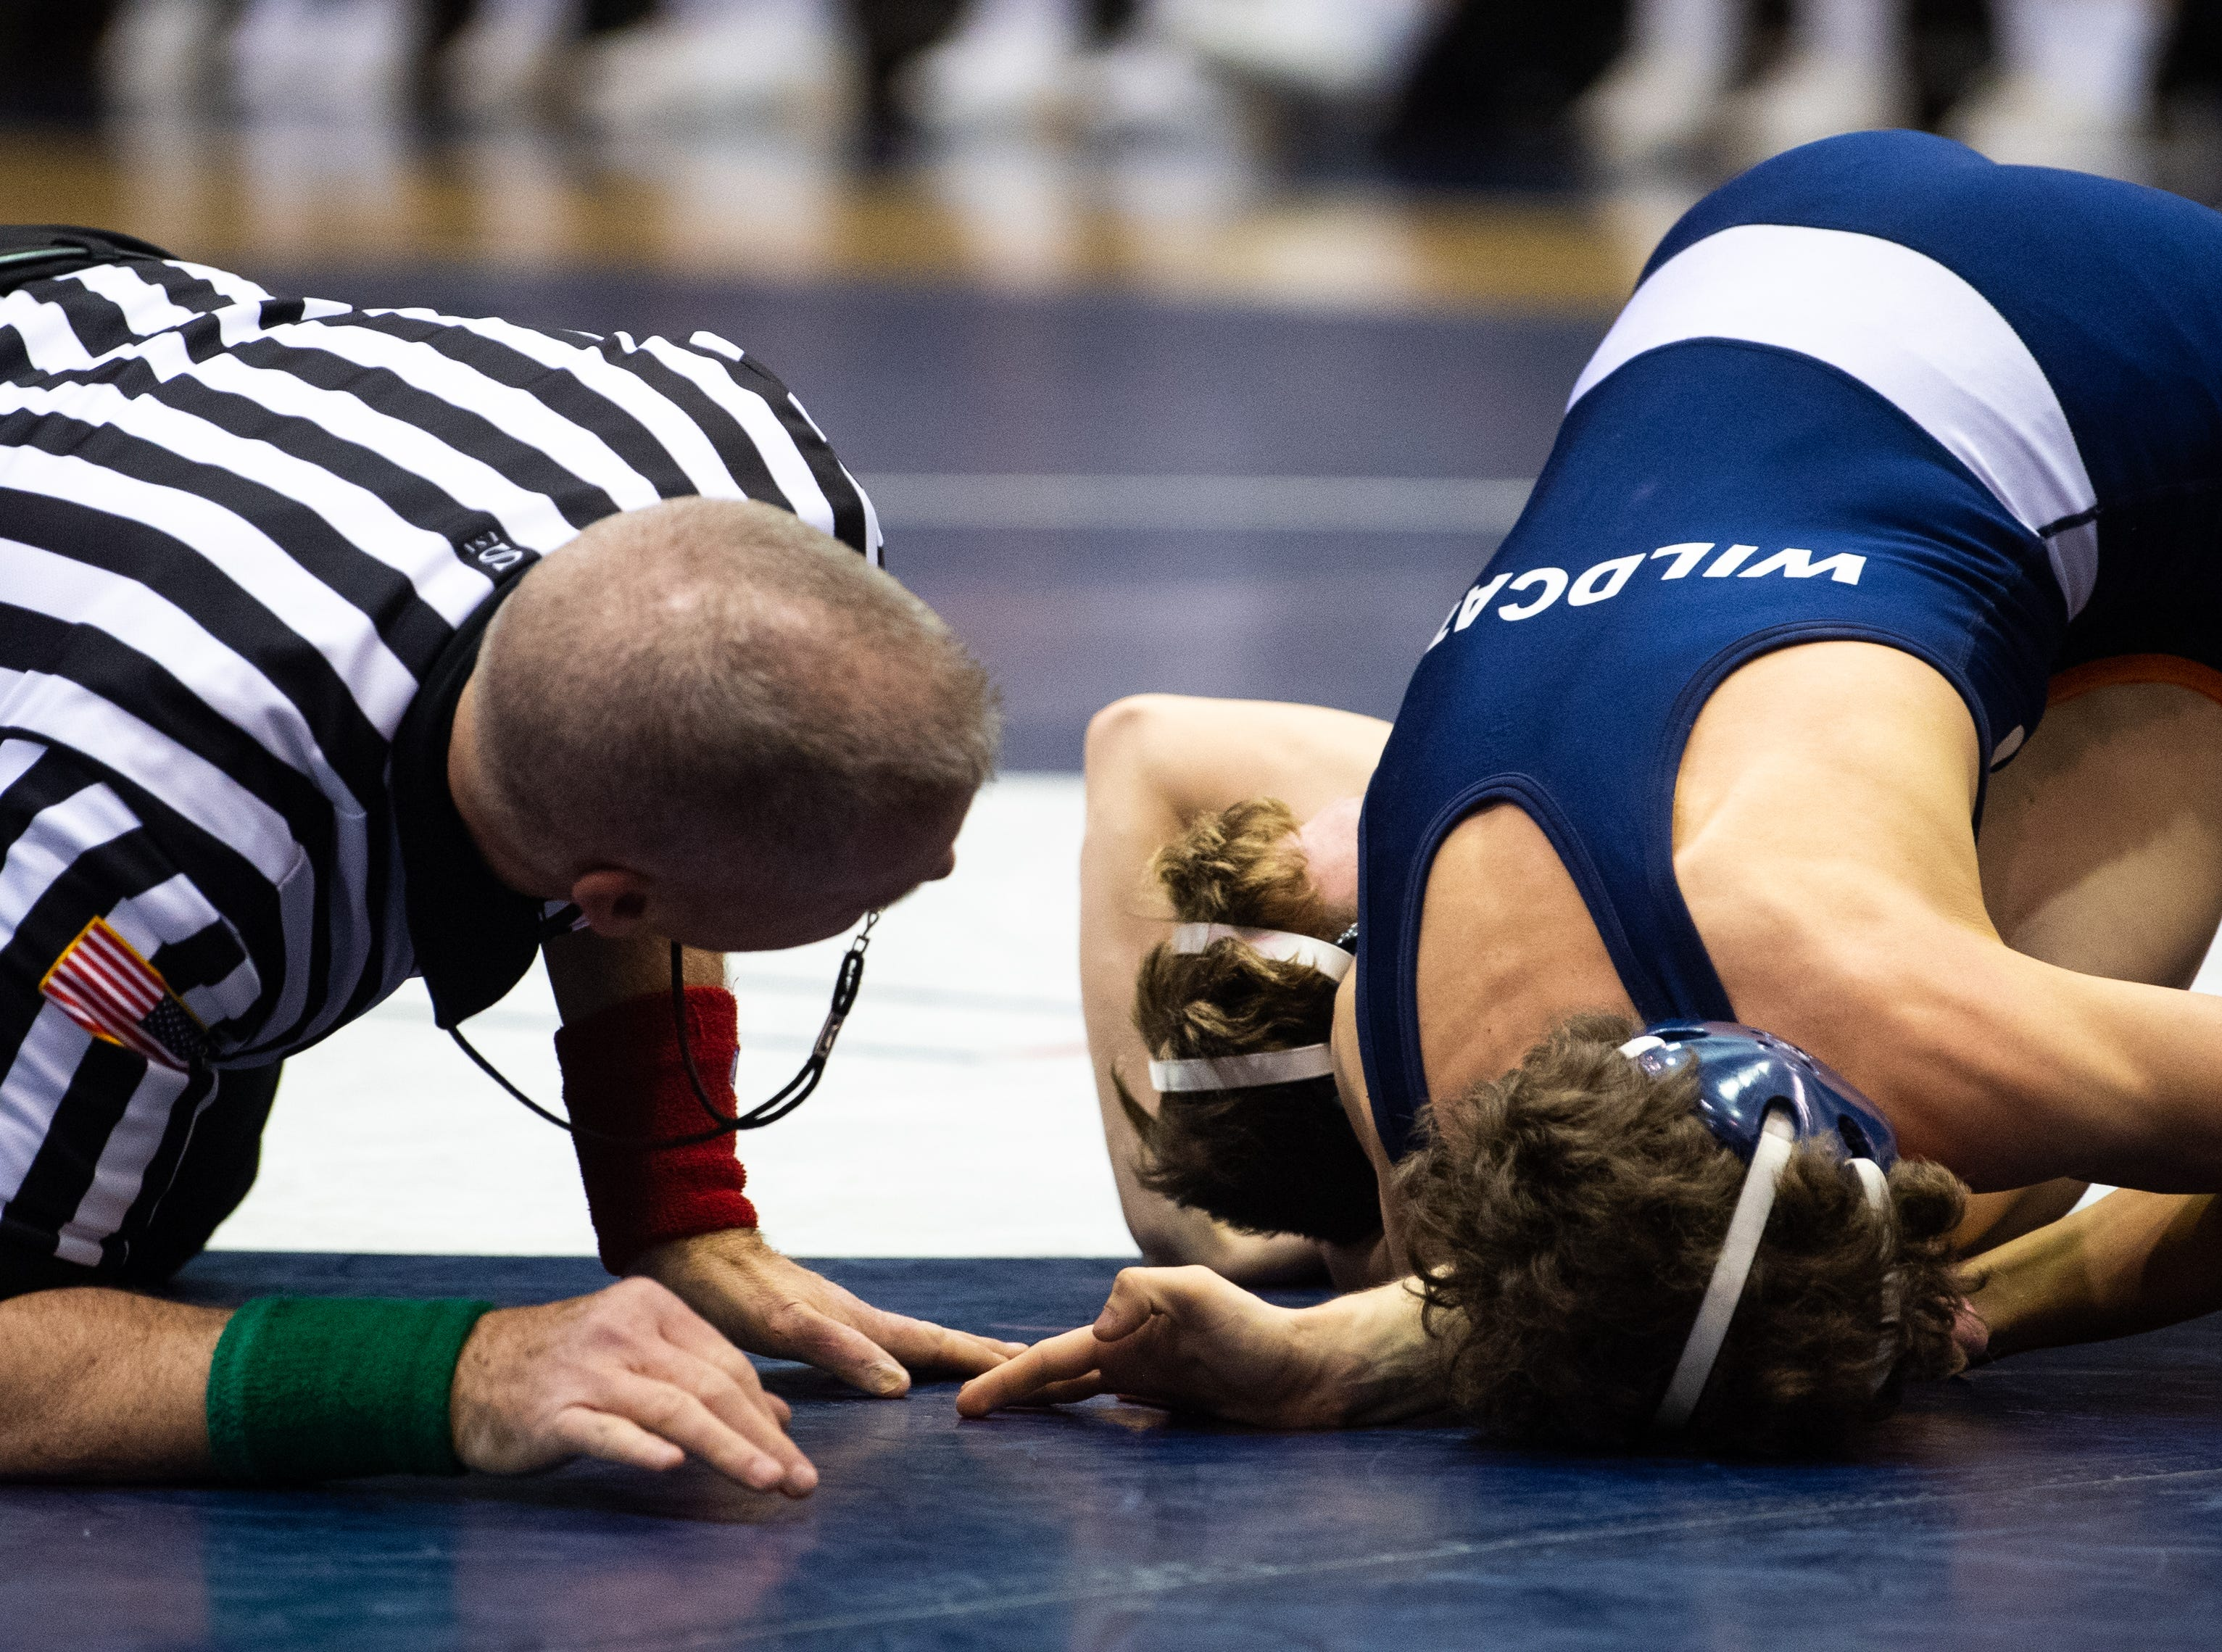 The ref watches as Dallastown's Carter MacDonald gains the upper hand over Isaak Gray of Central York during the wrestling dual meet, Thursday, January 3, 2019. The Wildcats defeated the Panthers 62-18.